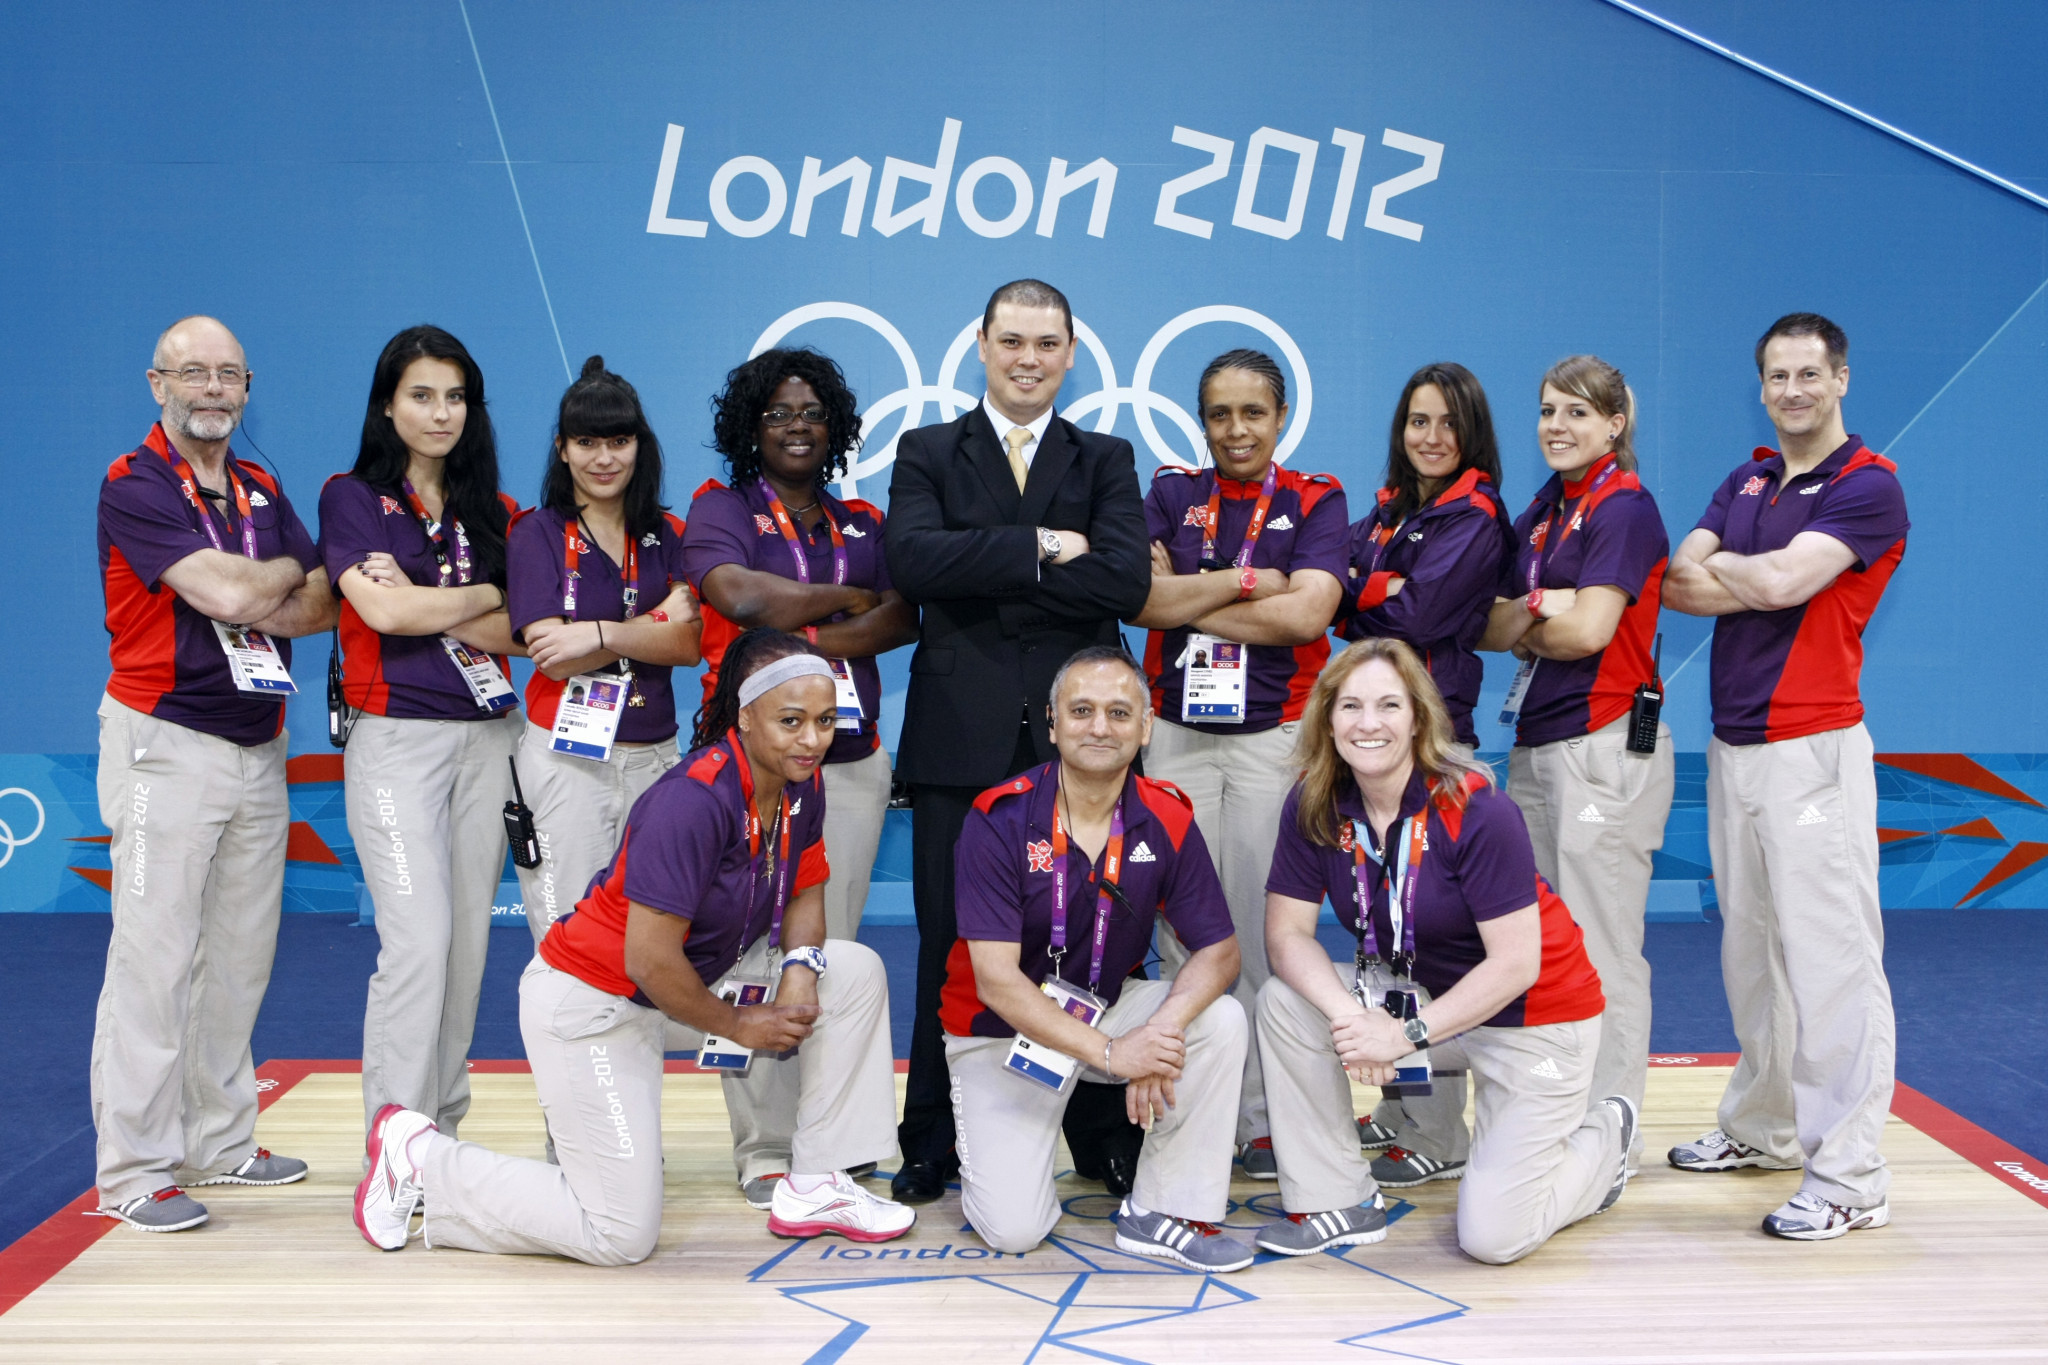 Matthew Curtain, centre back row, and the weightlifting team at London 2012 ©Matthew Curtain